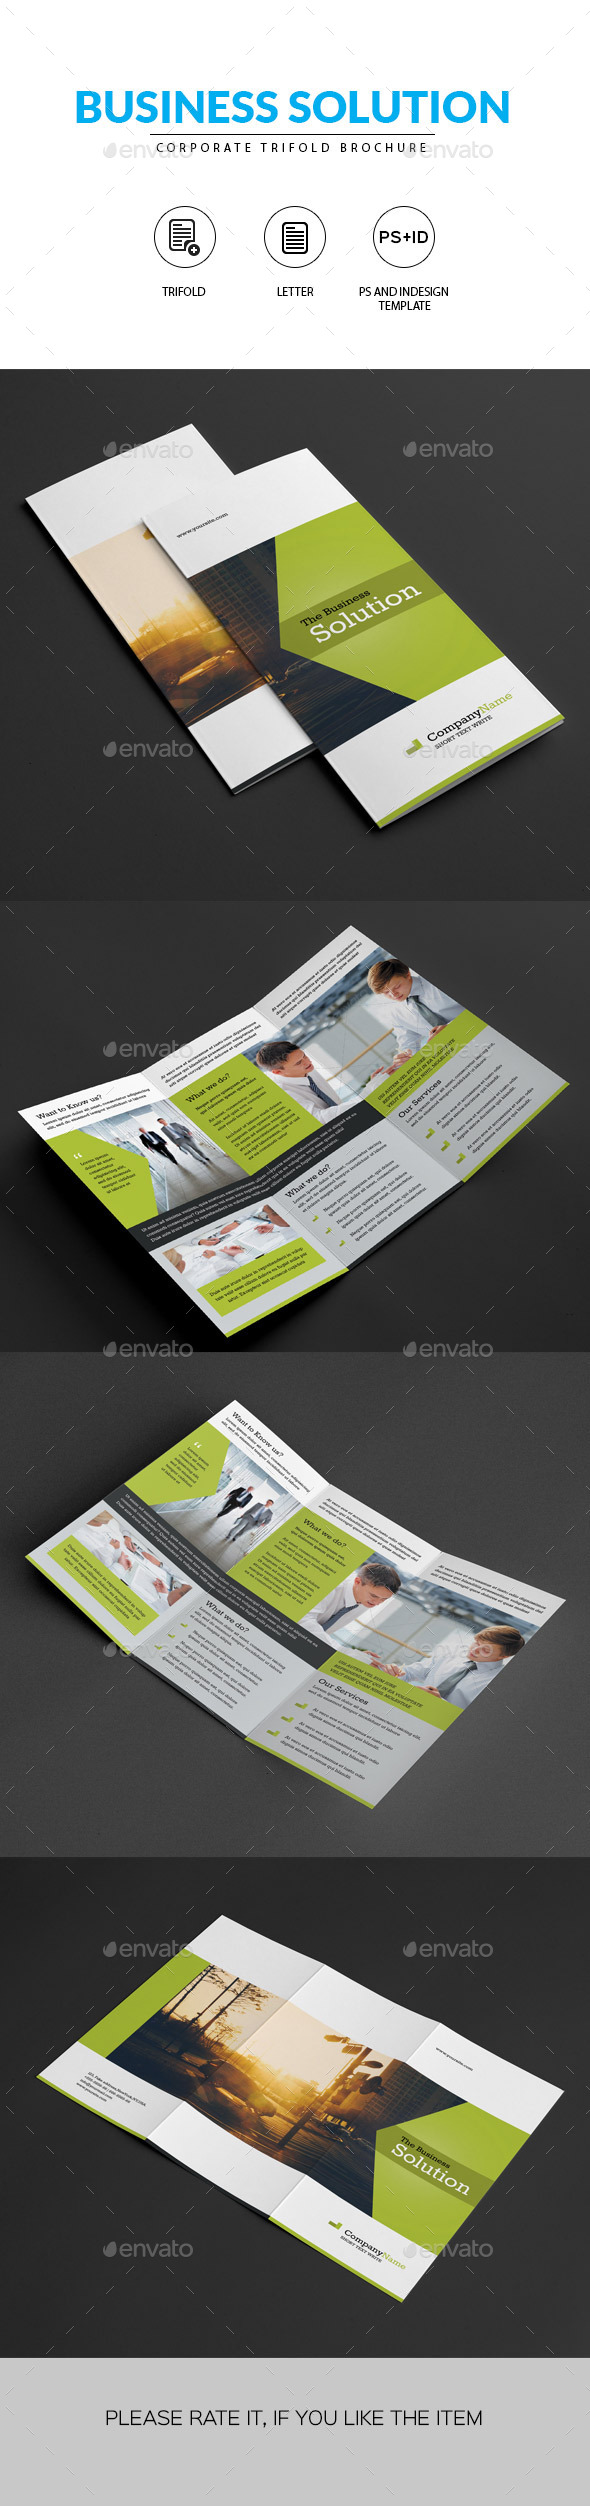 GraphicRiver Clean Corporate Trifold Brochure 11311647